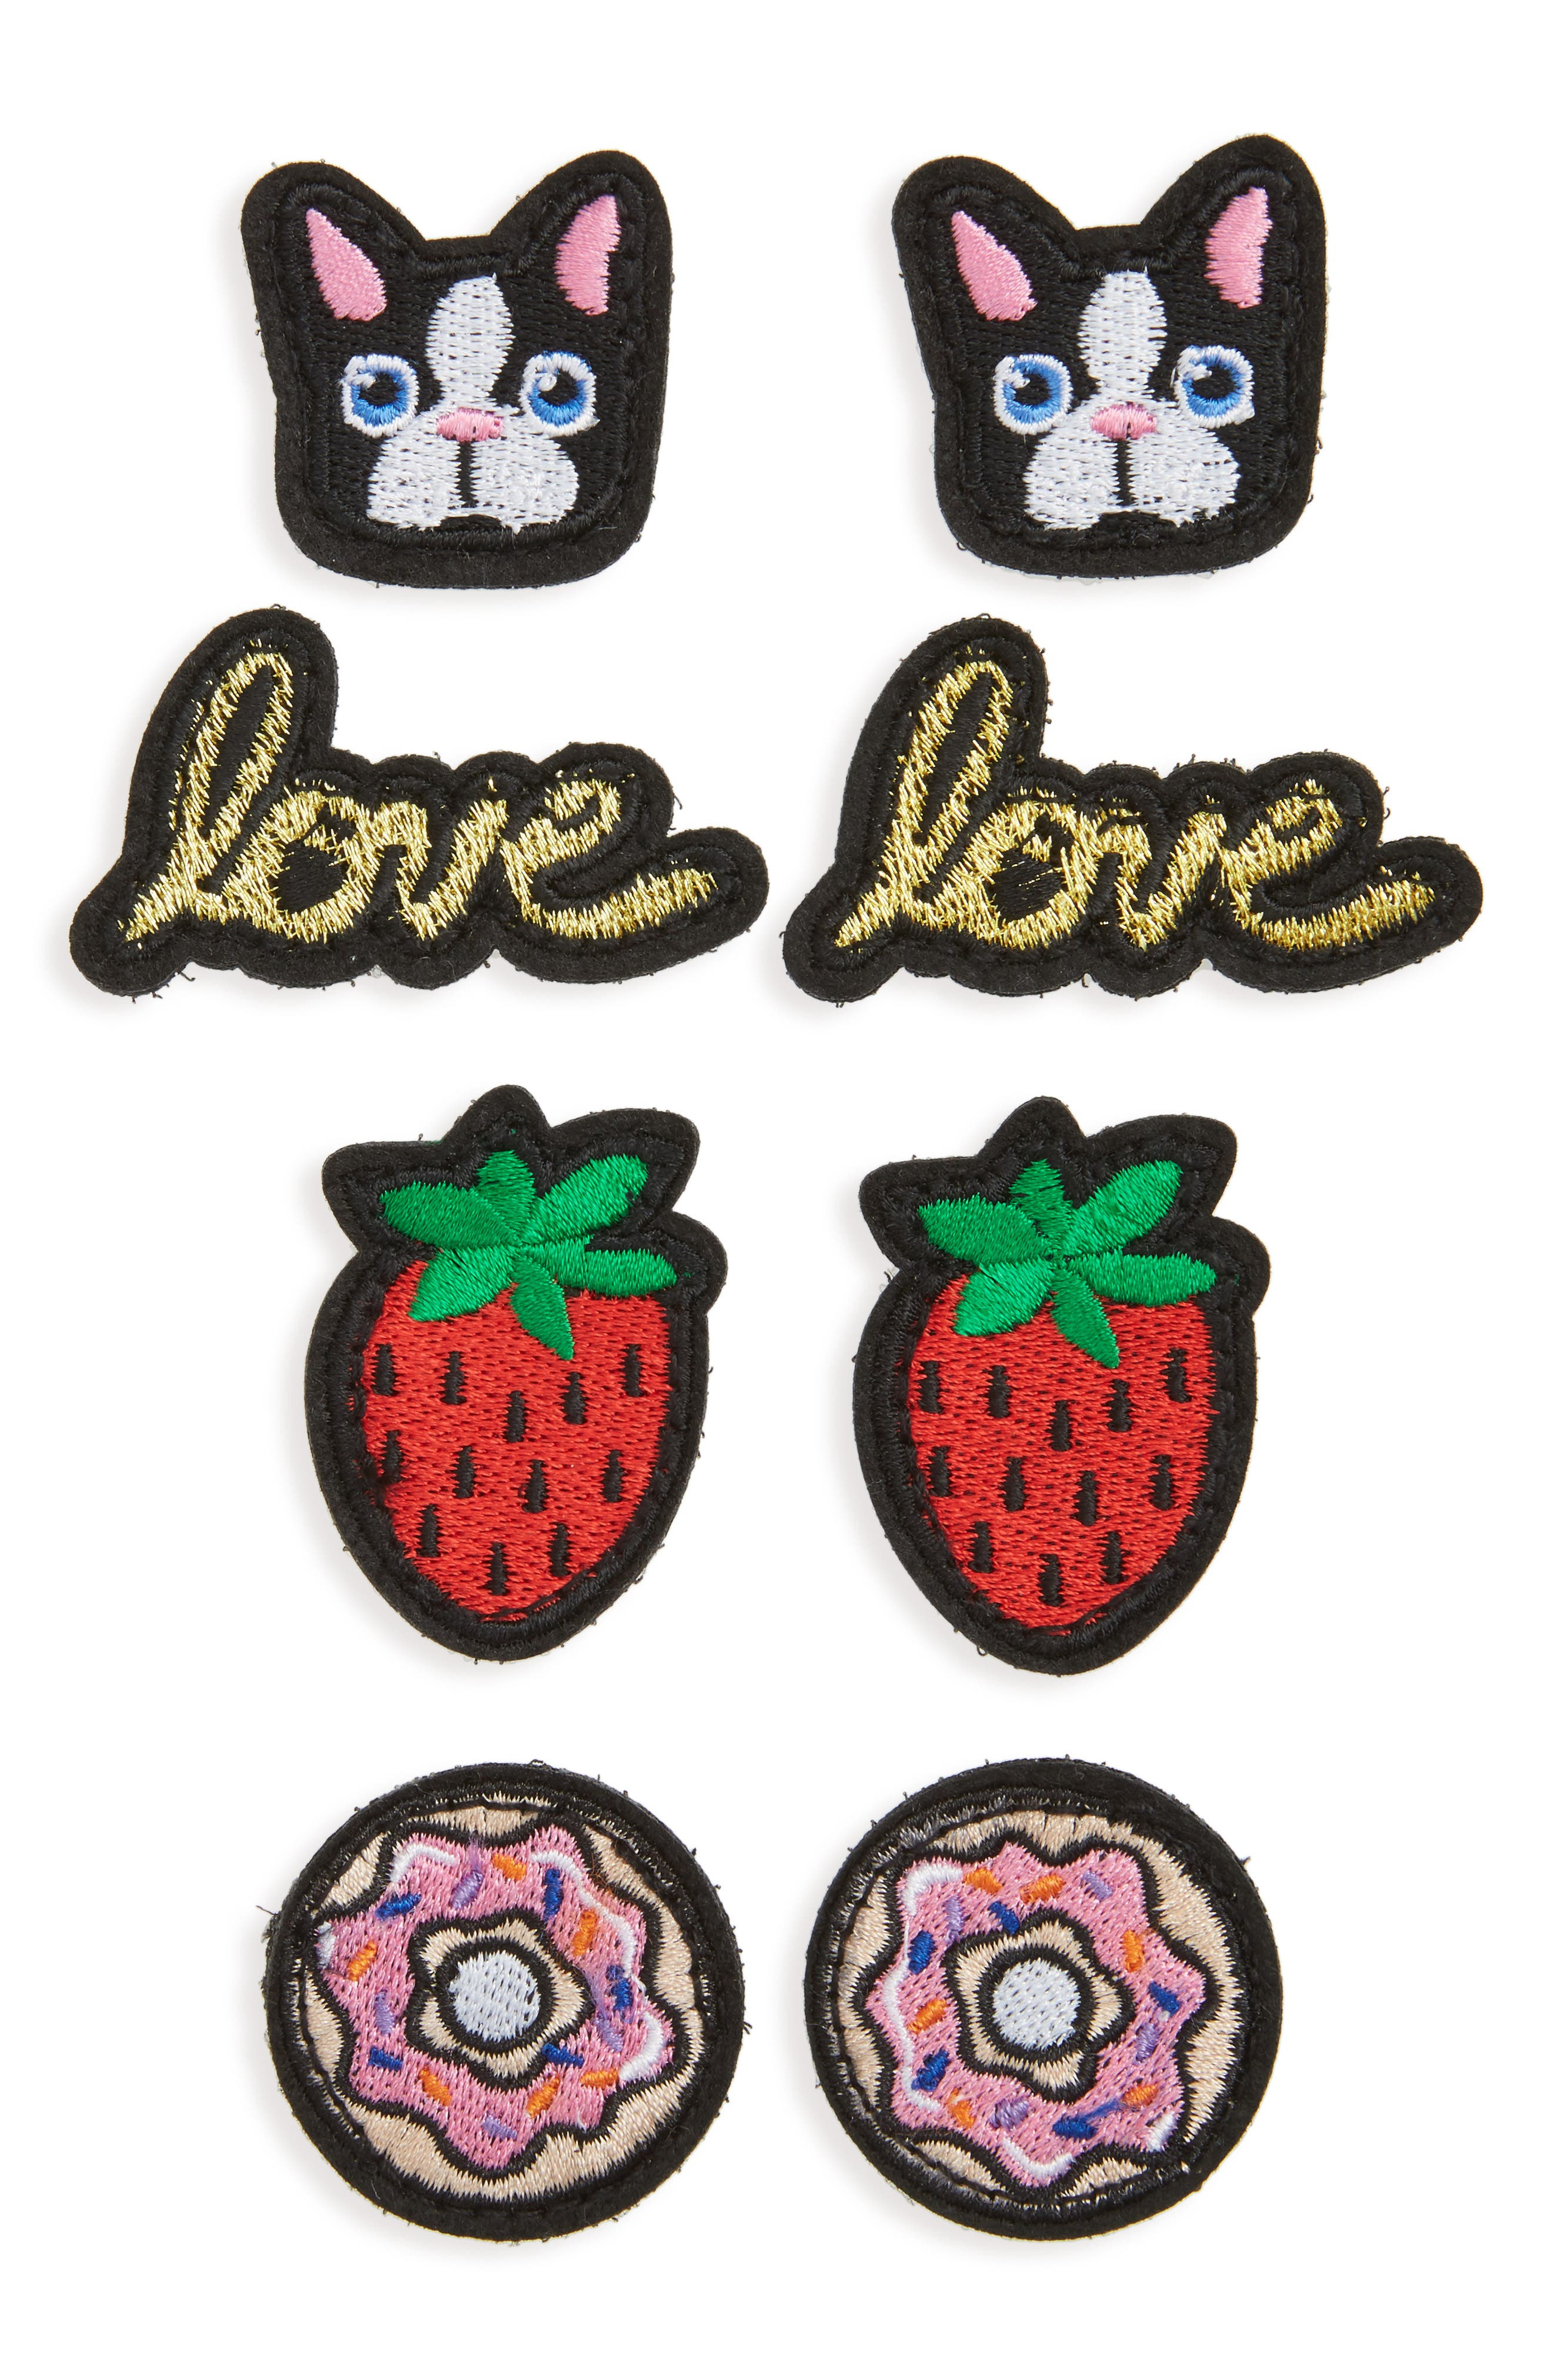 Set of 8 Embroidered Patches,                             Main thumbnail 1, color,                             001